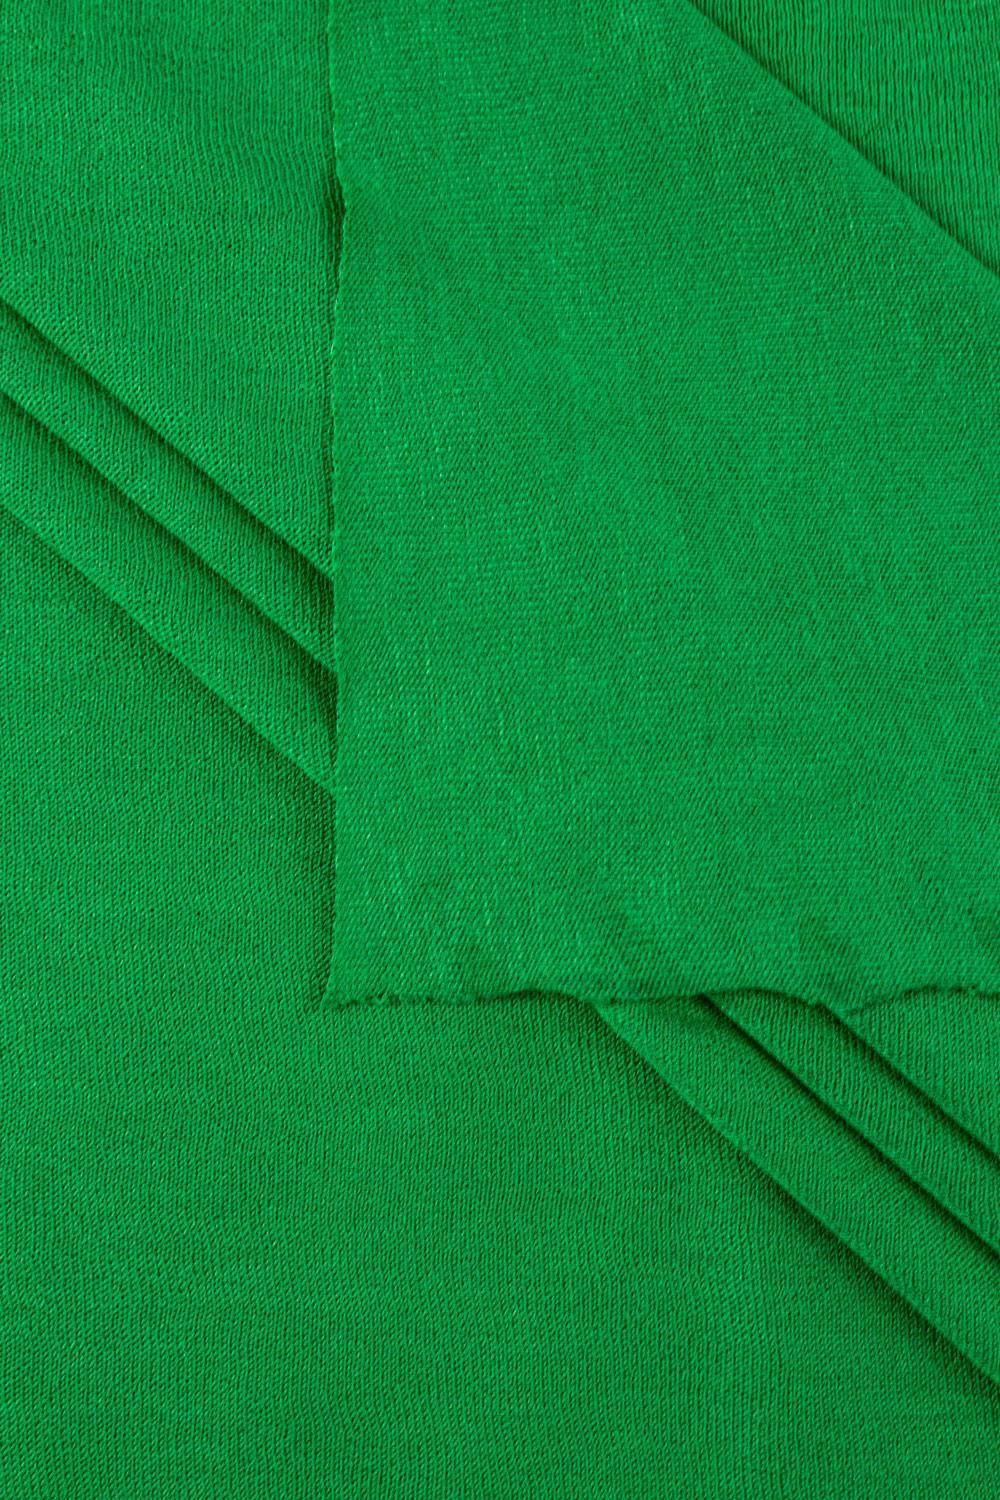 Knit - Viscose Jersey - Green - 175 cm - 140 g/m2